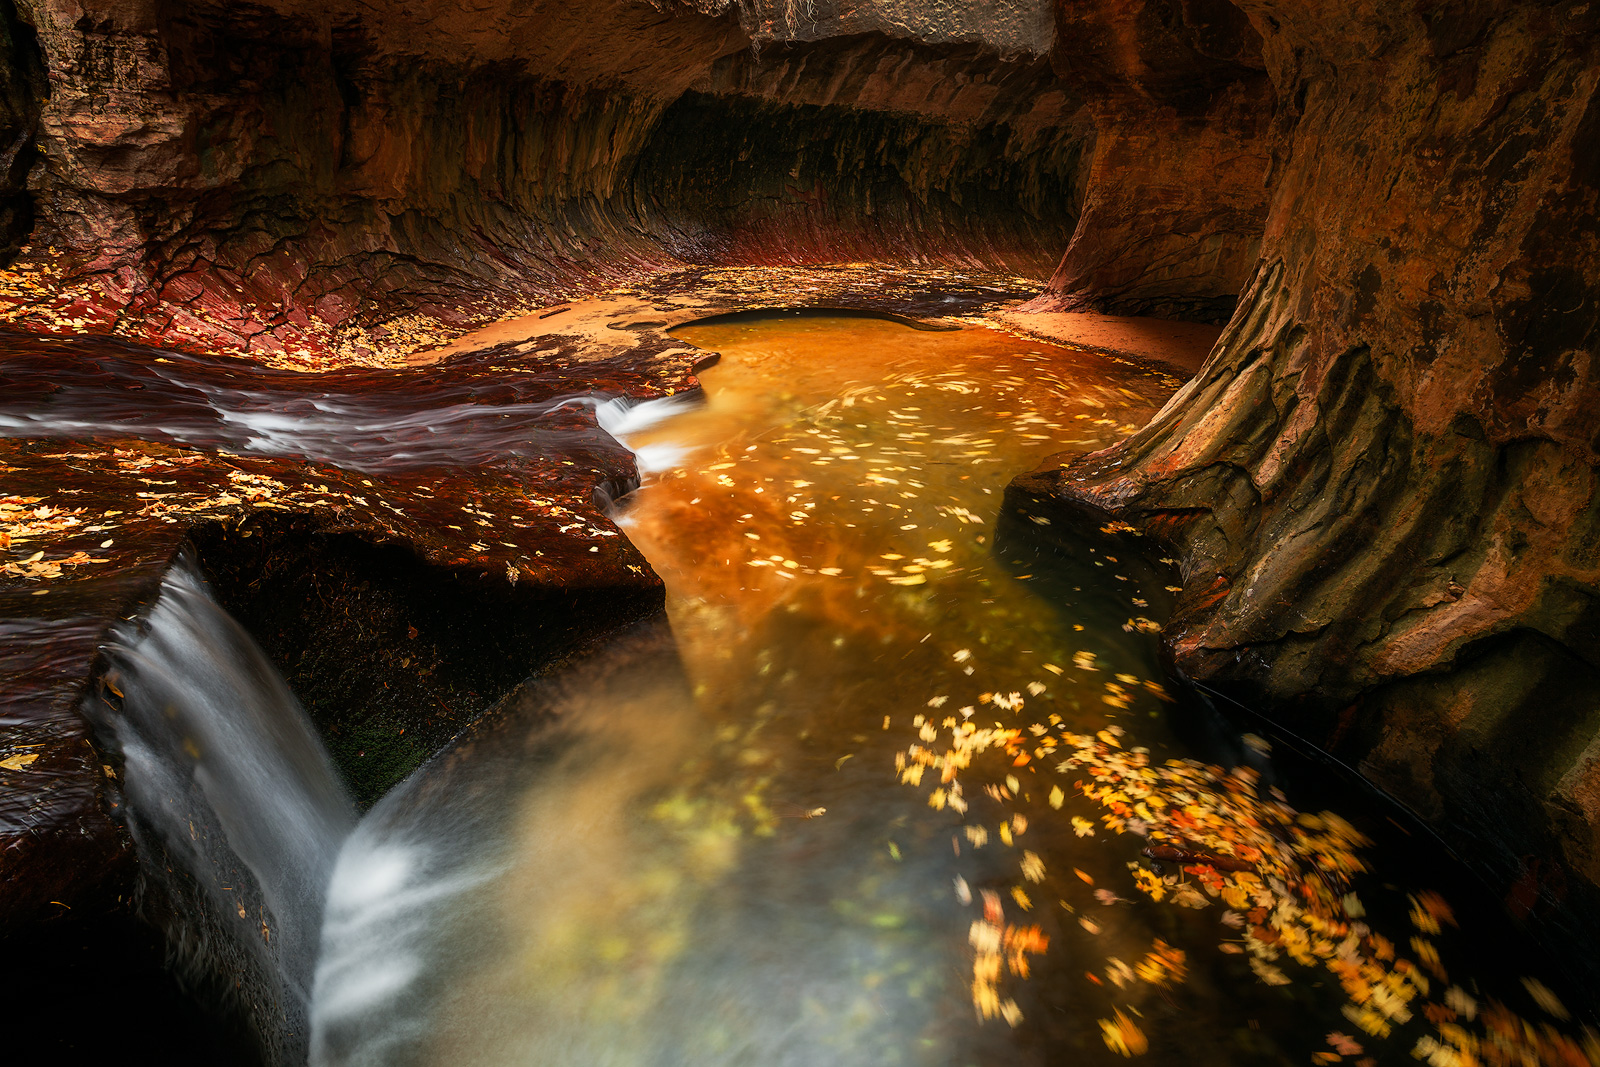 america,autumn,colors,fall,foliage,horizontal,leaf,leaves,left fork,left fork at north creek,left fork of north creek,north america,southwest,subway,swirling,the subway,united states,us,usa,utah,zion